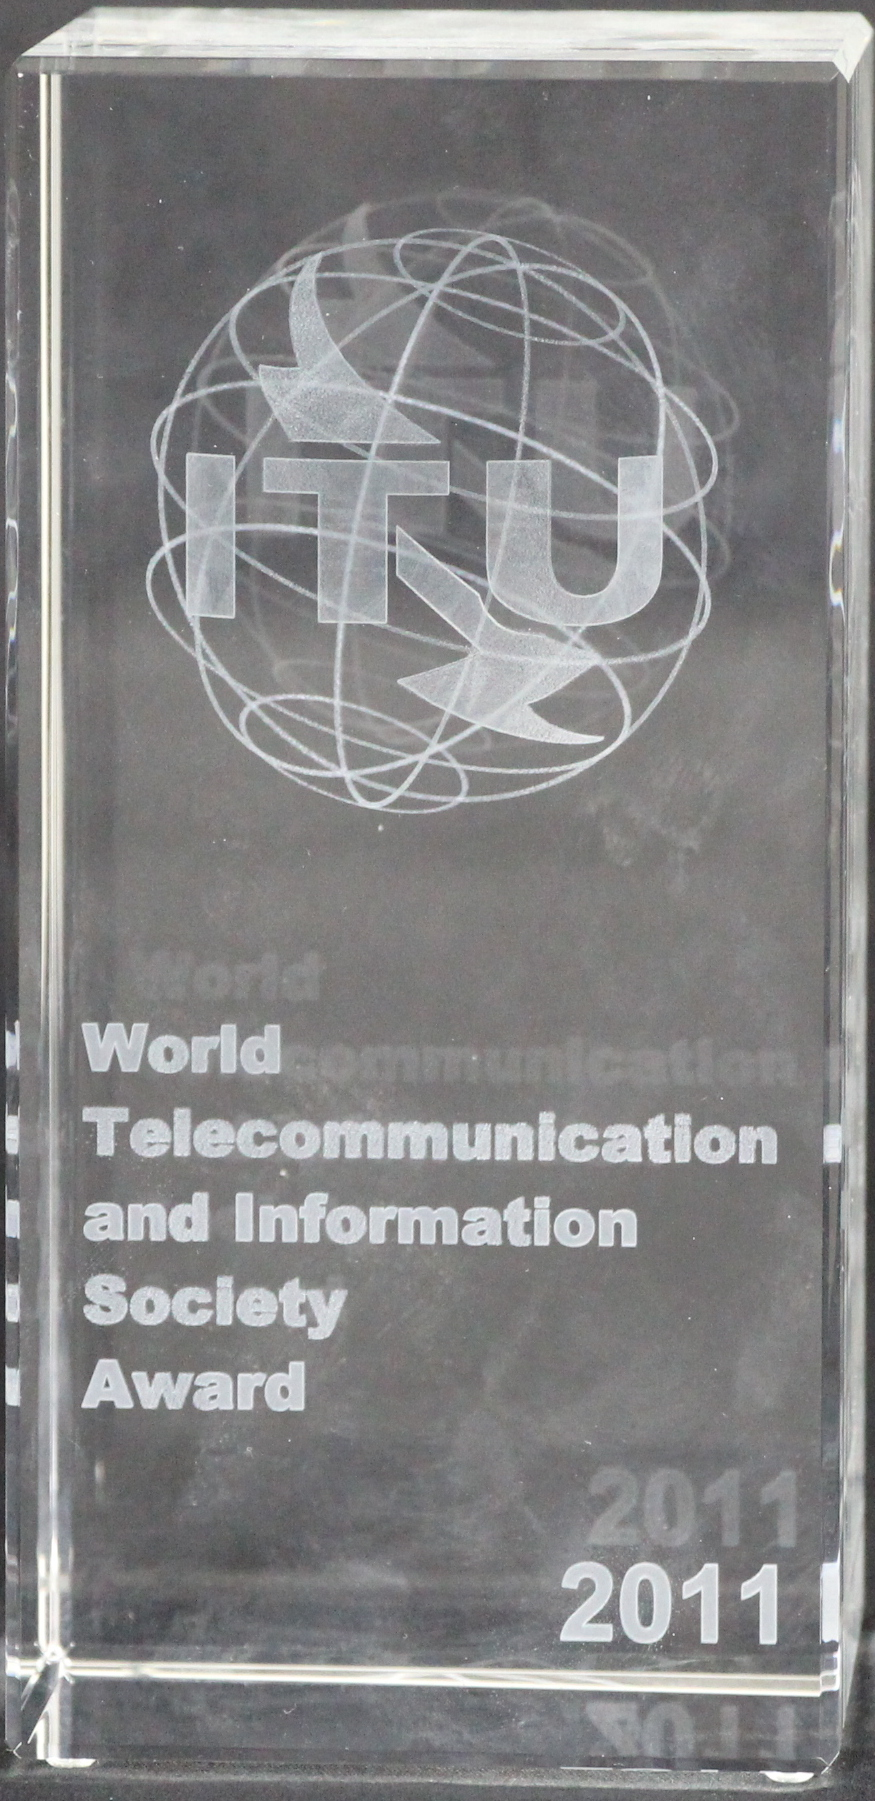 World Telecommunication and Information Society Award, ITU, 2011